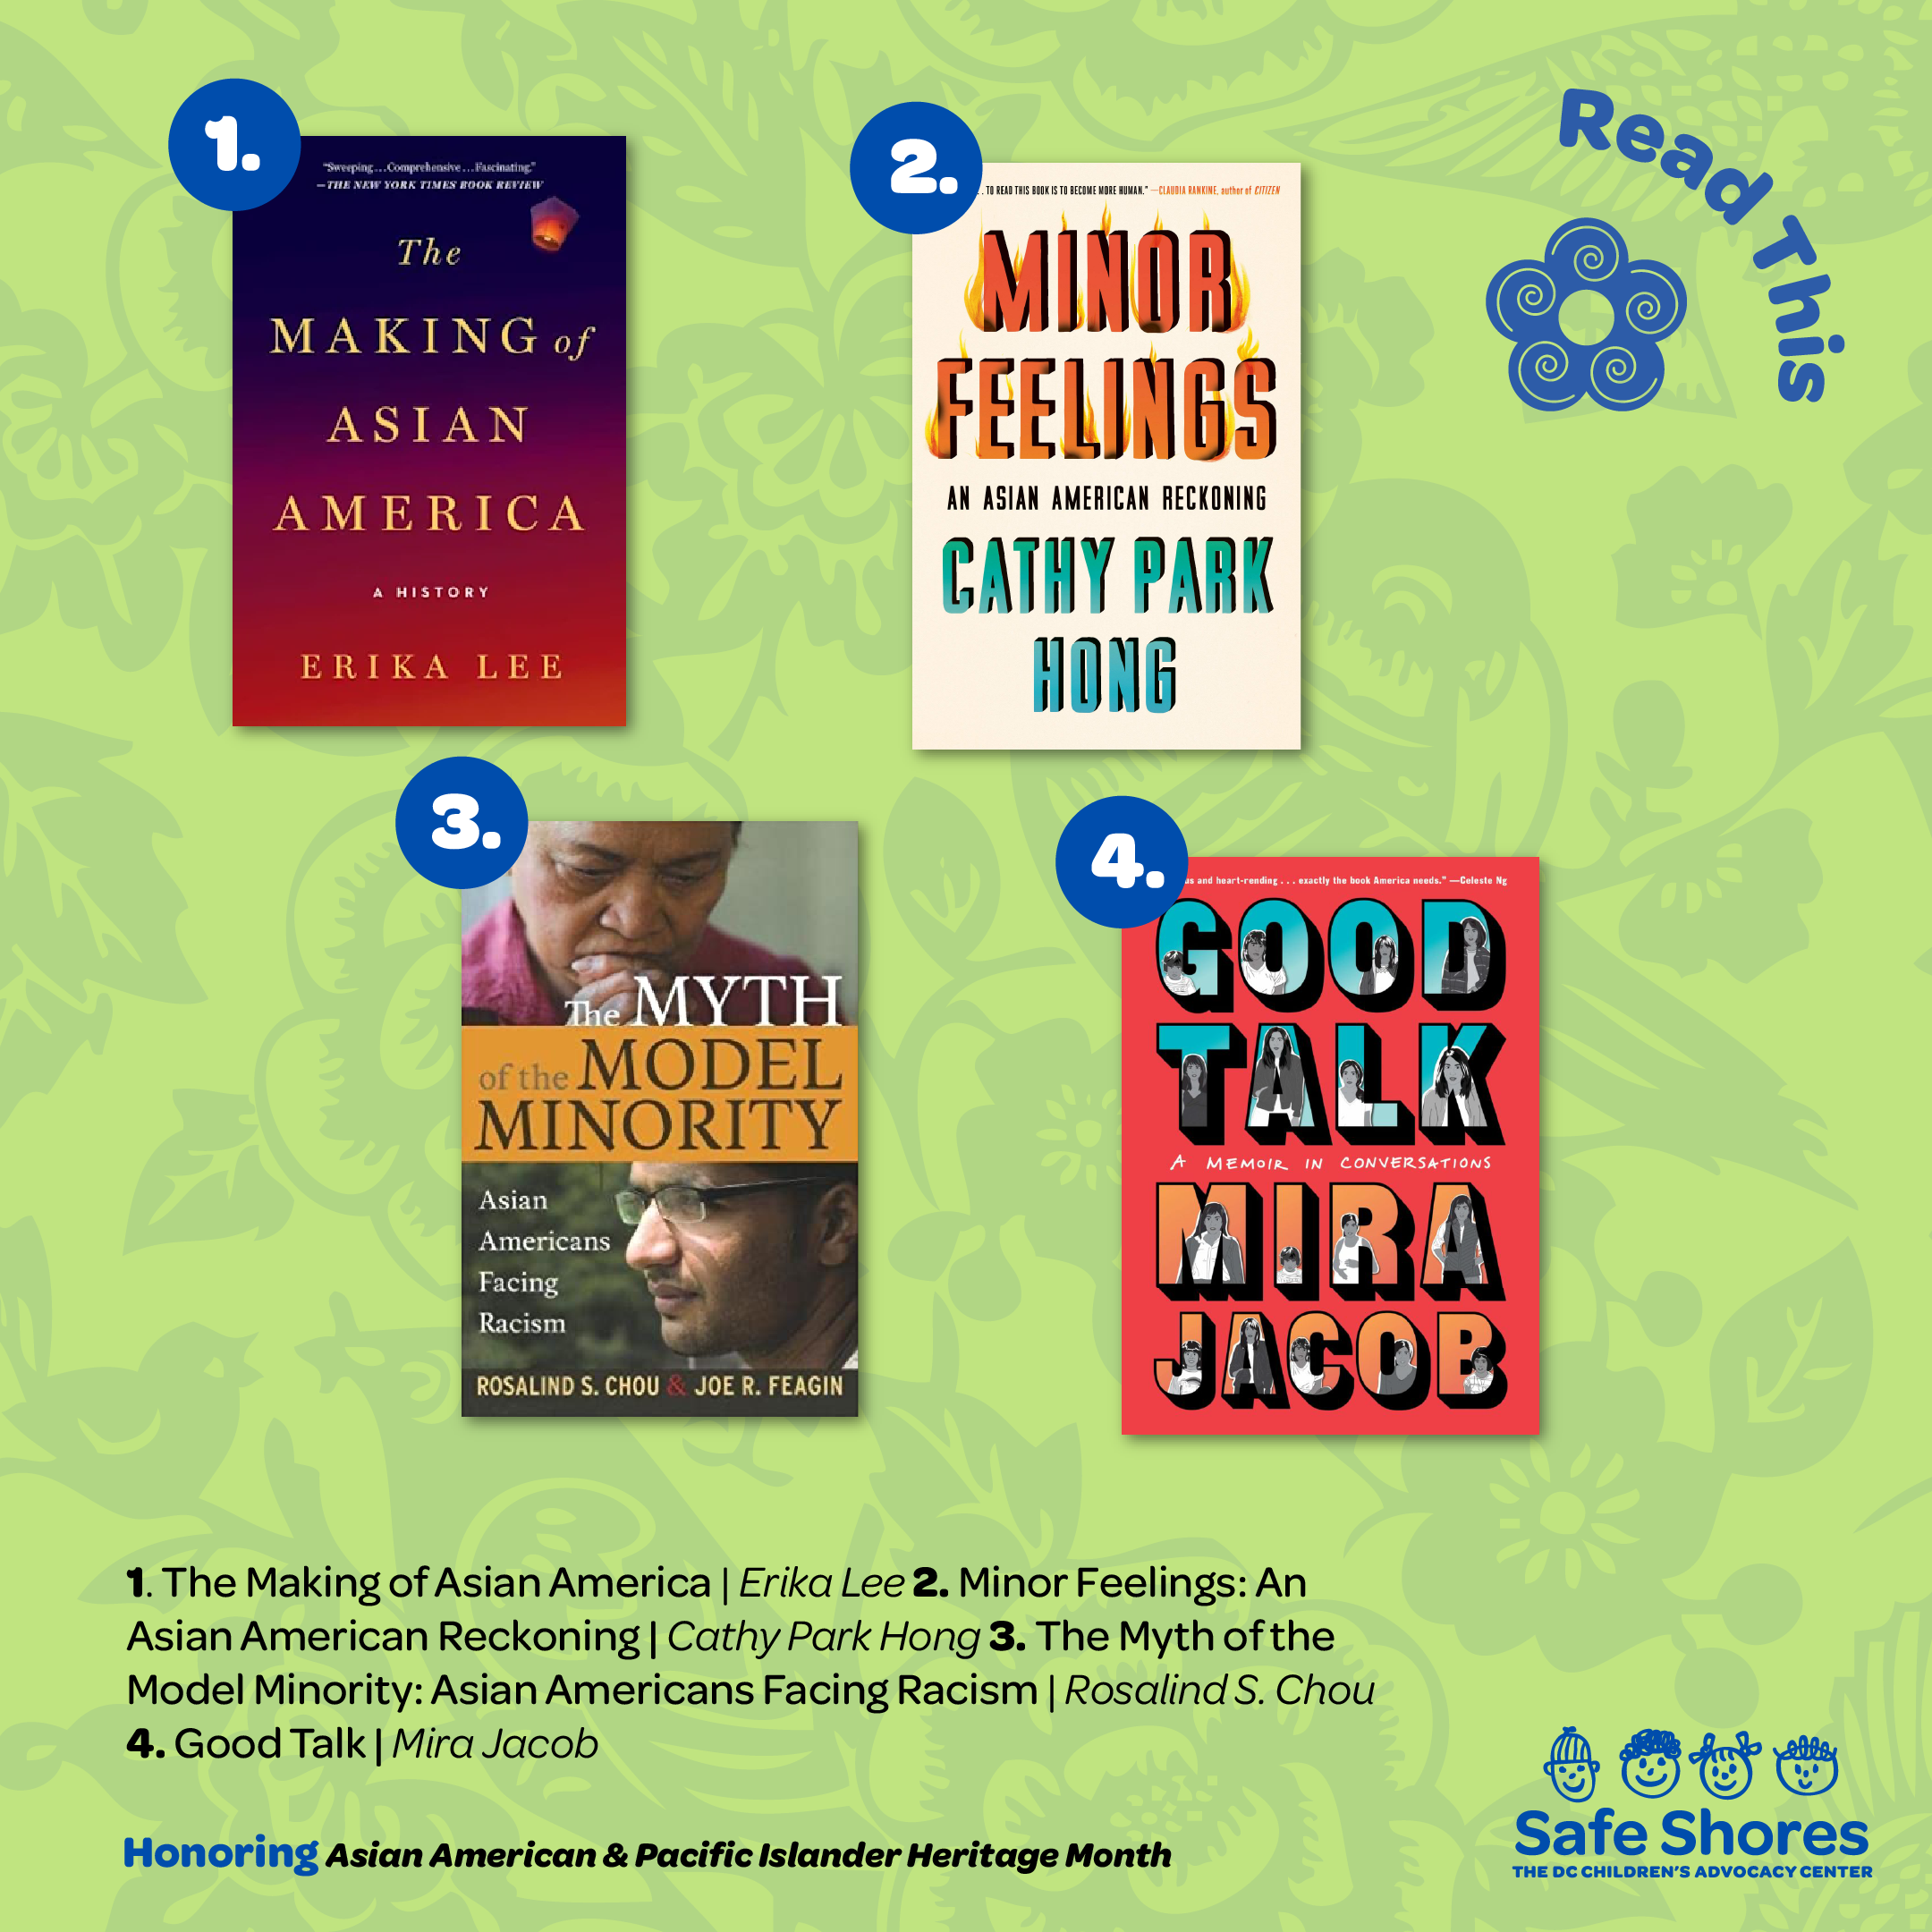 Books to read for Asian American and Pacific Islander Heritage. Books listed are: 1. The Making ofAsianAmerica by Erika Lee 2. Minor Feelings: An Asian America Reckoning by Cathy Park Hong 3. The Myth of the Model Minority: Asian Americans Facing Racism by Rosalind S. Chou 4. Good Talk: A Memoir in Conversations by Mira Jacob